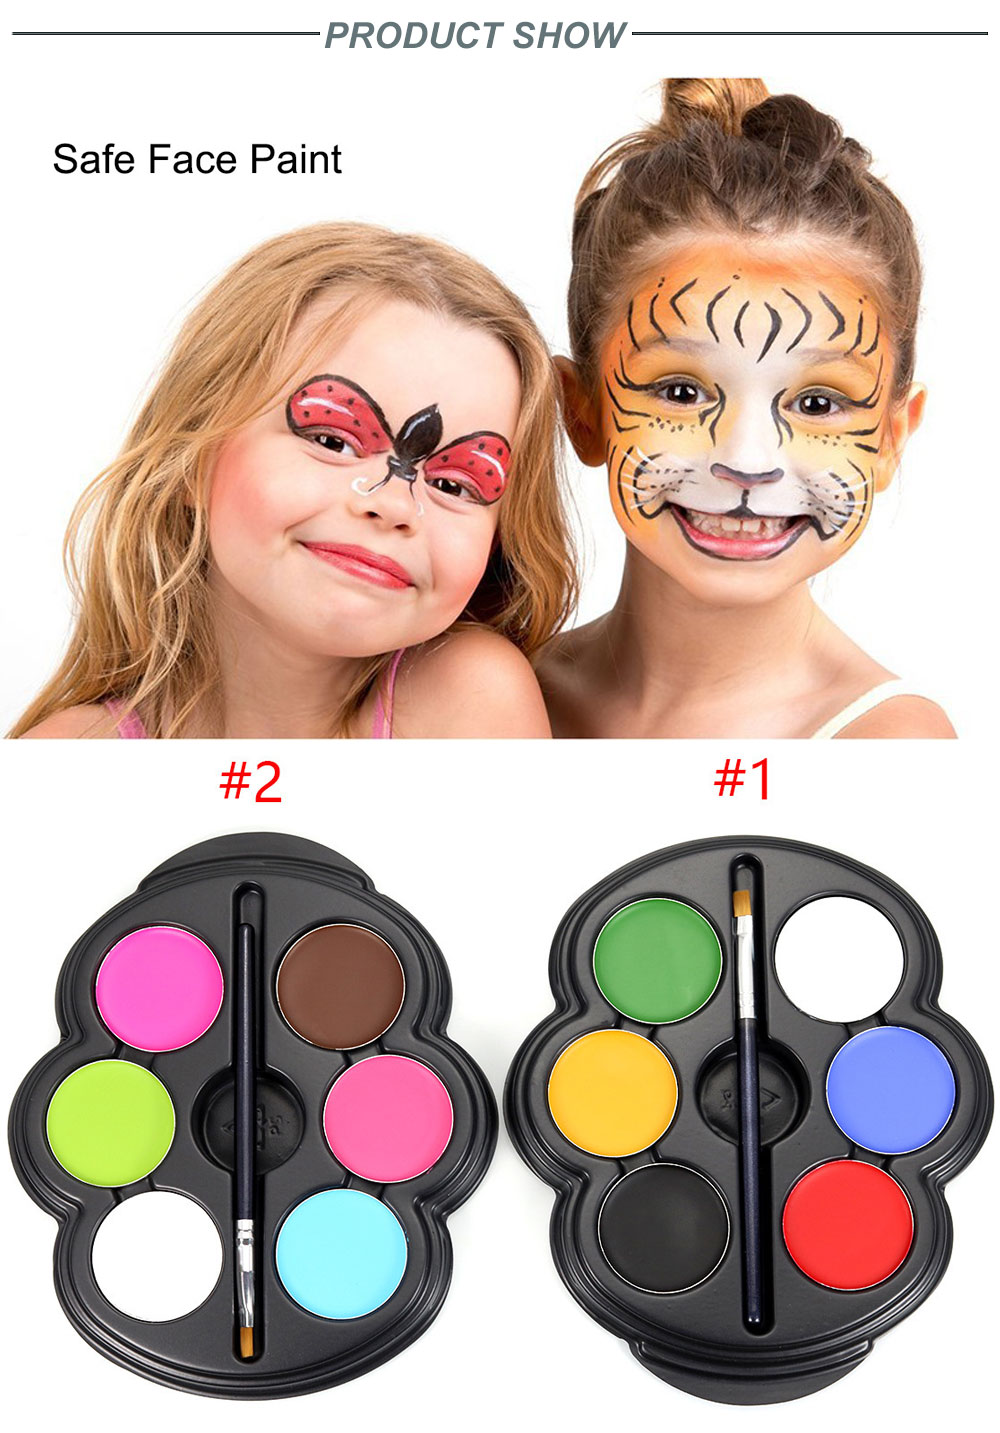 Popfeel 6 Colors Body Face Paint Makeup Painting Pigment Multicolor Series Body Art